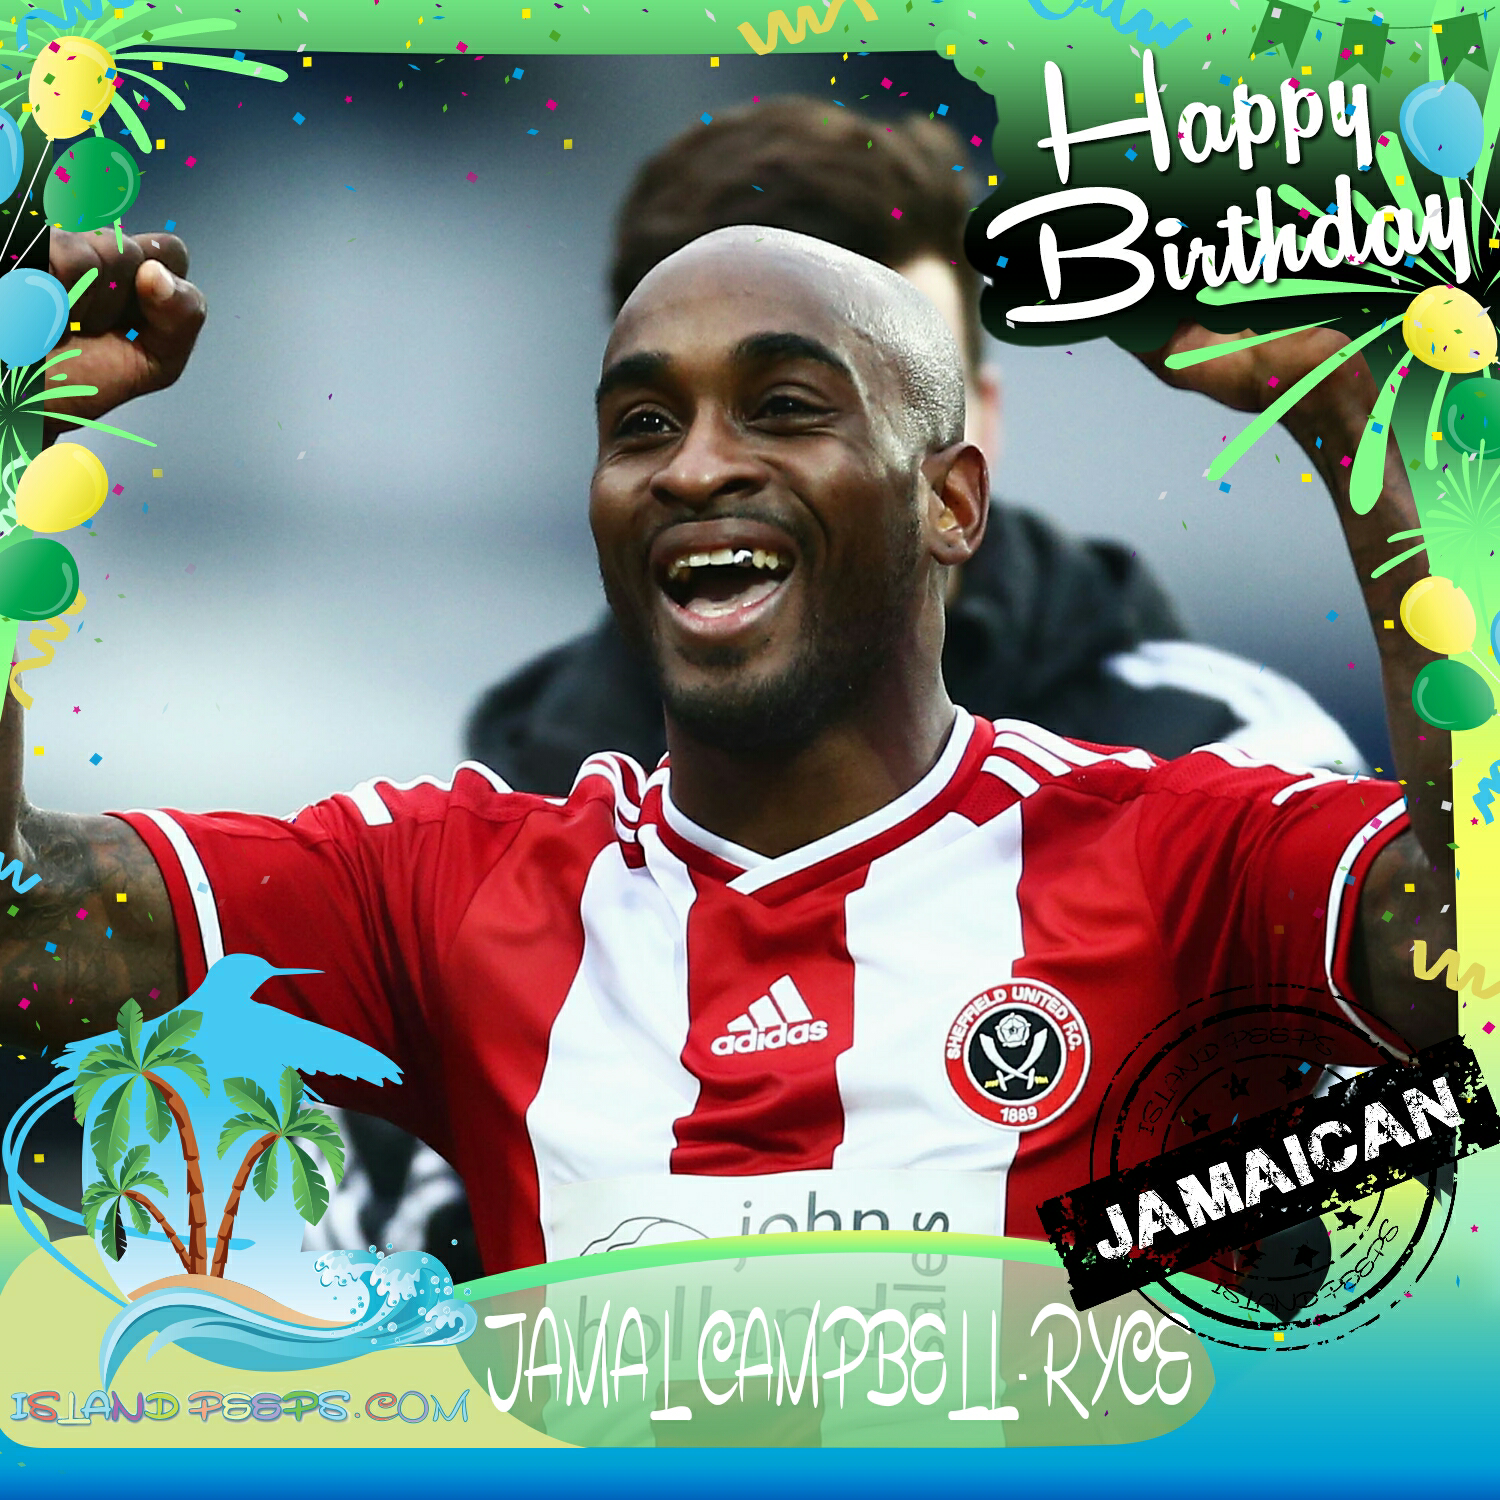 Happy Birthday Jamal Campbell Ryce English Born Soccer Player Of Jamaican Descent Today We Celebrate You Jamalcampbe Sheffield United Soccer Players Soccer